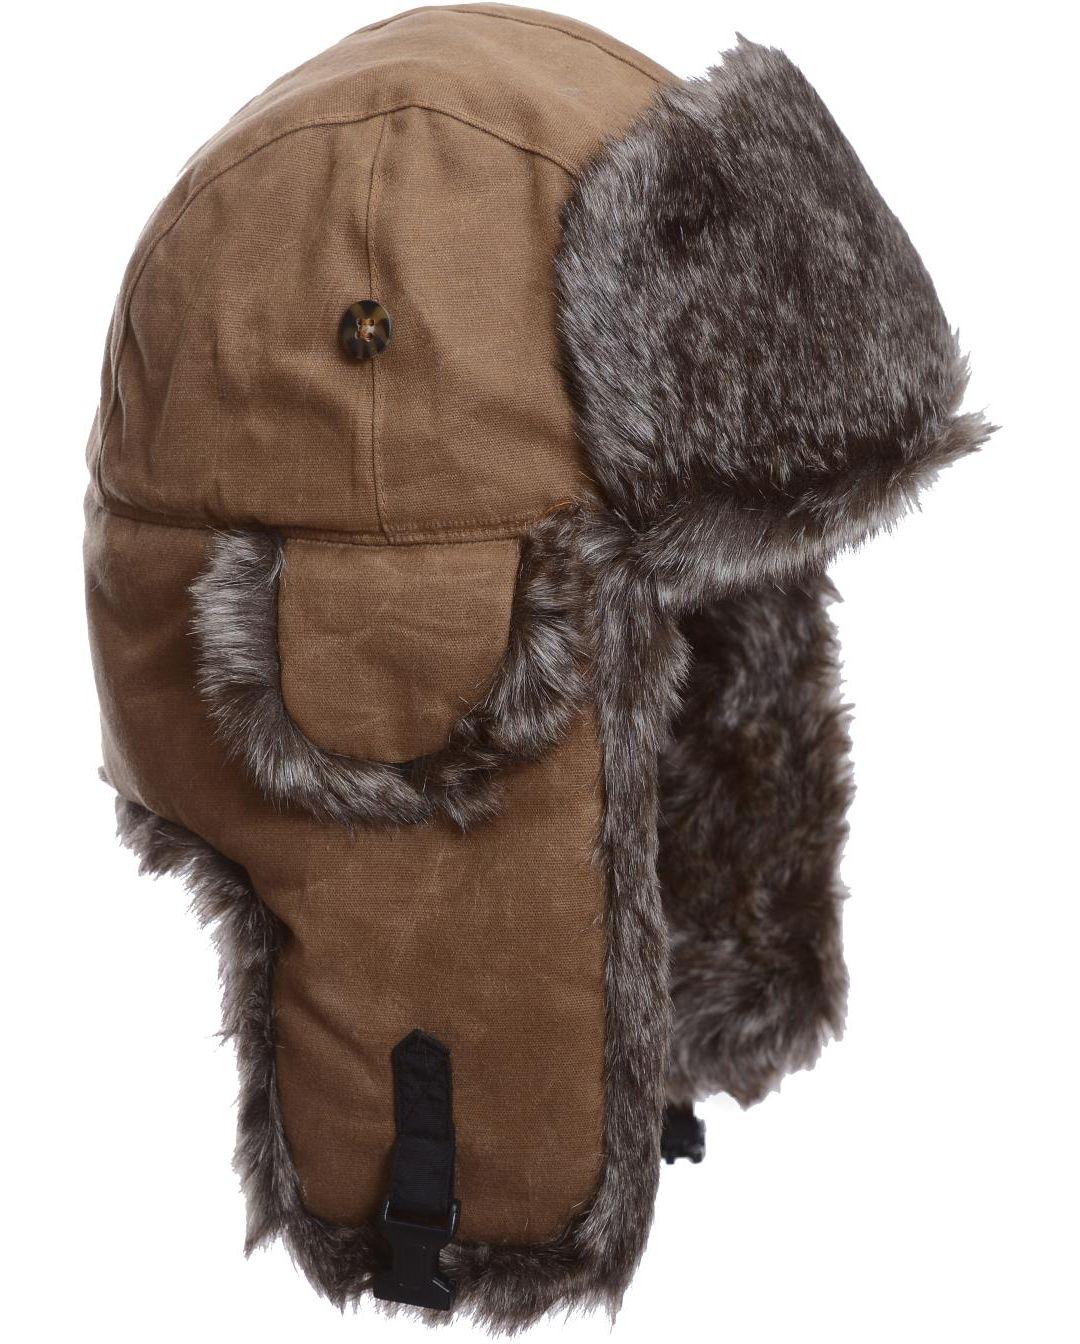 75c45e05 Mad Bomber Men's Khaki Waxed Cotton Faux Fur Bomber Hat | DICK'S ...